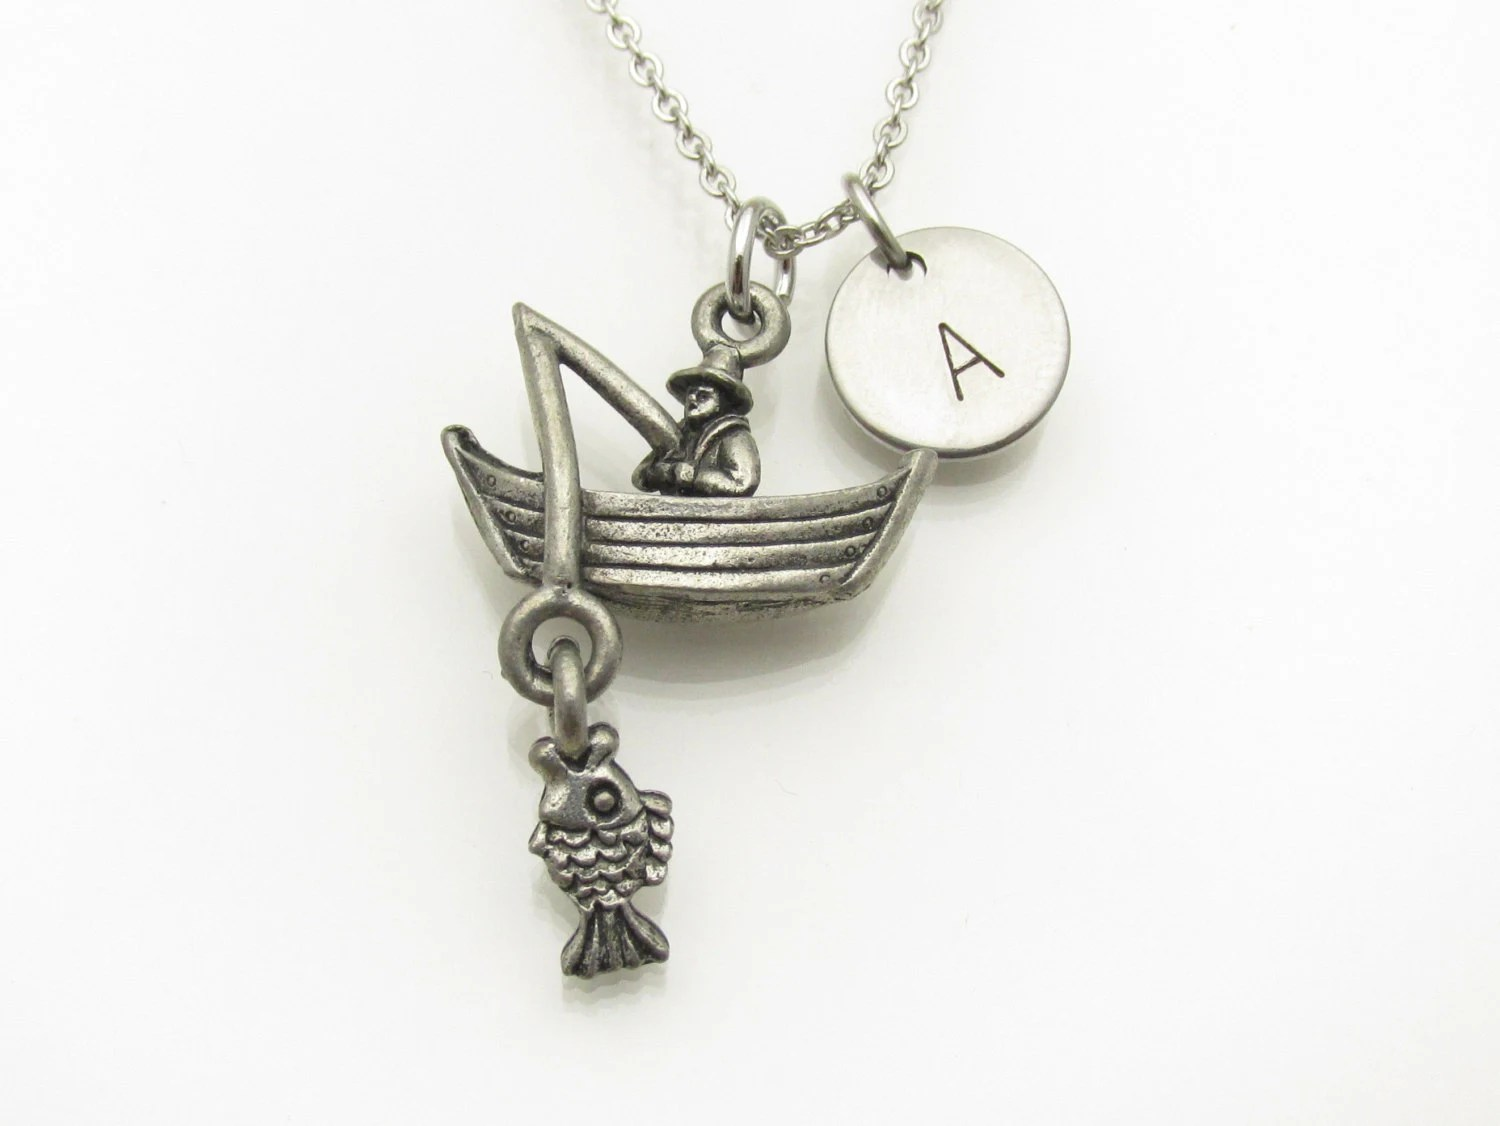 Fishing Boat Necklace Man on Fishing Boat Charm Personalized